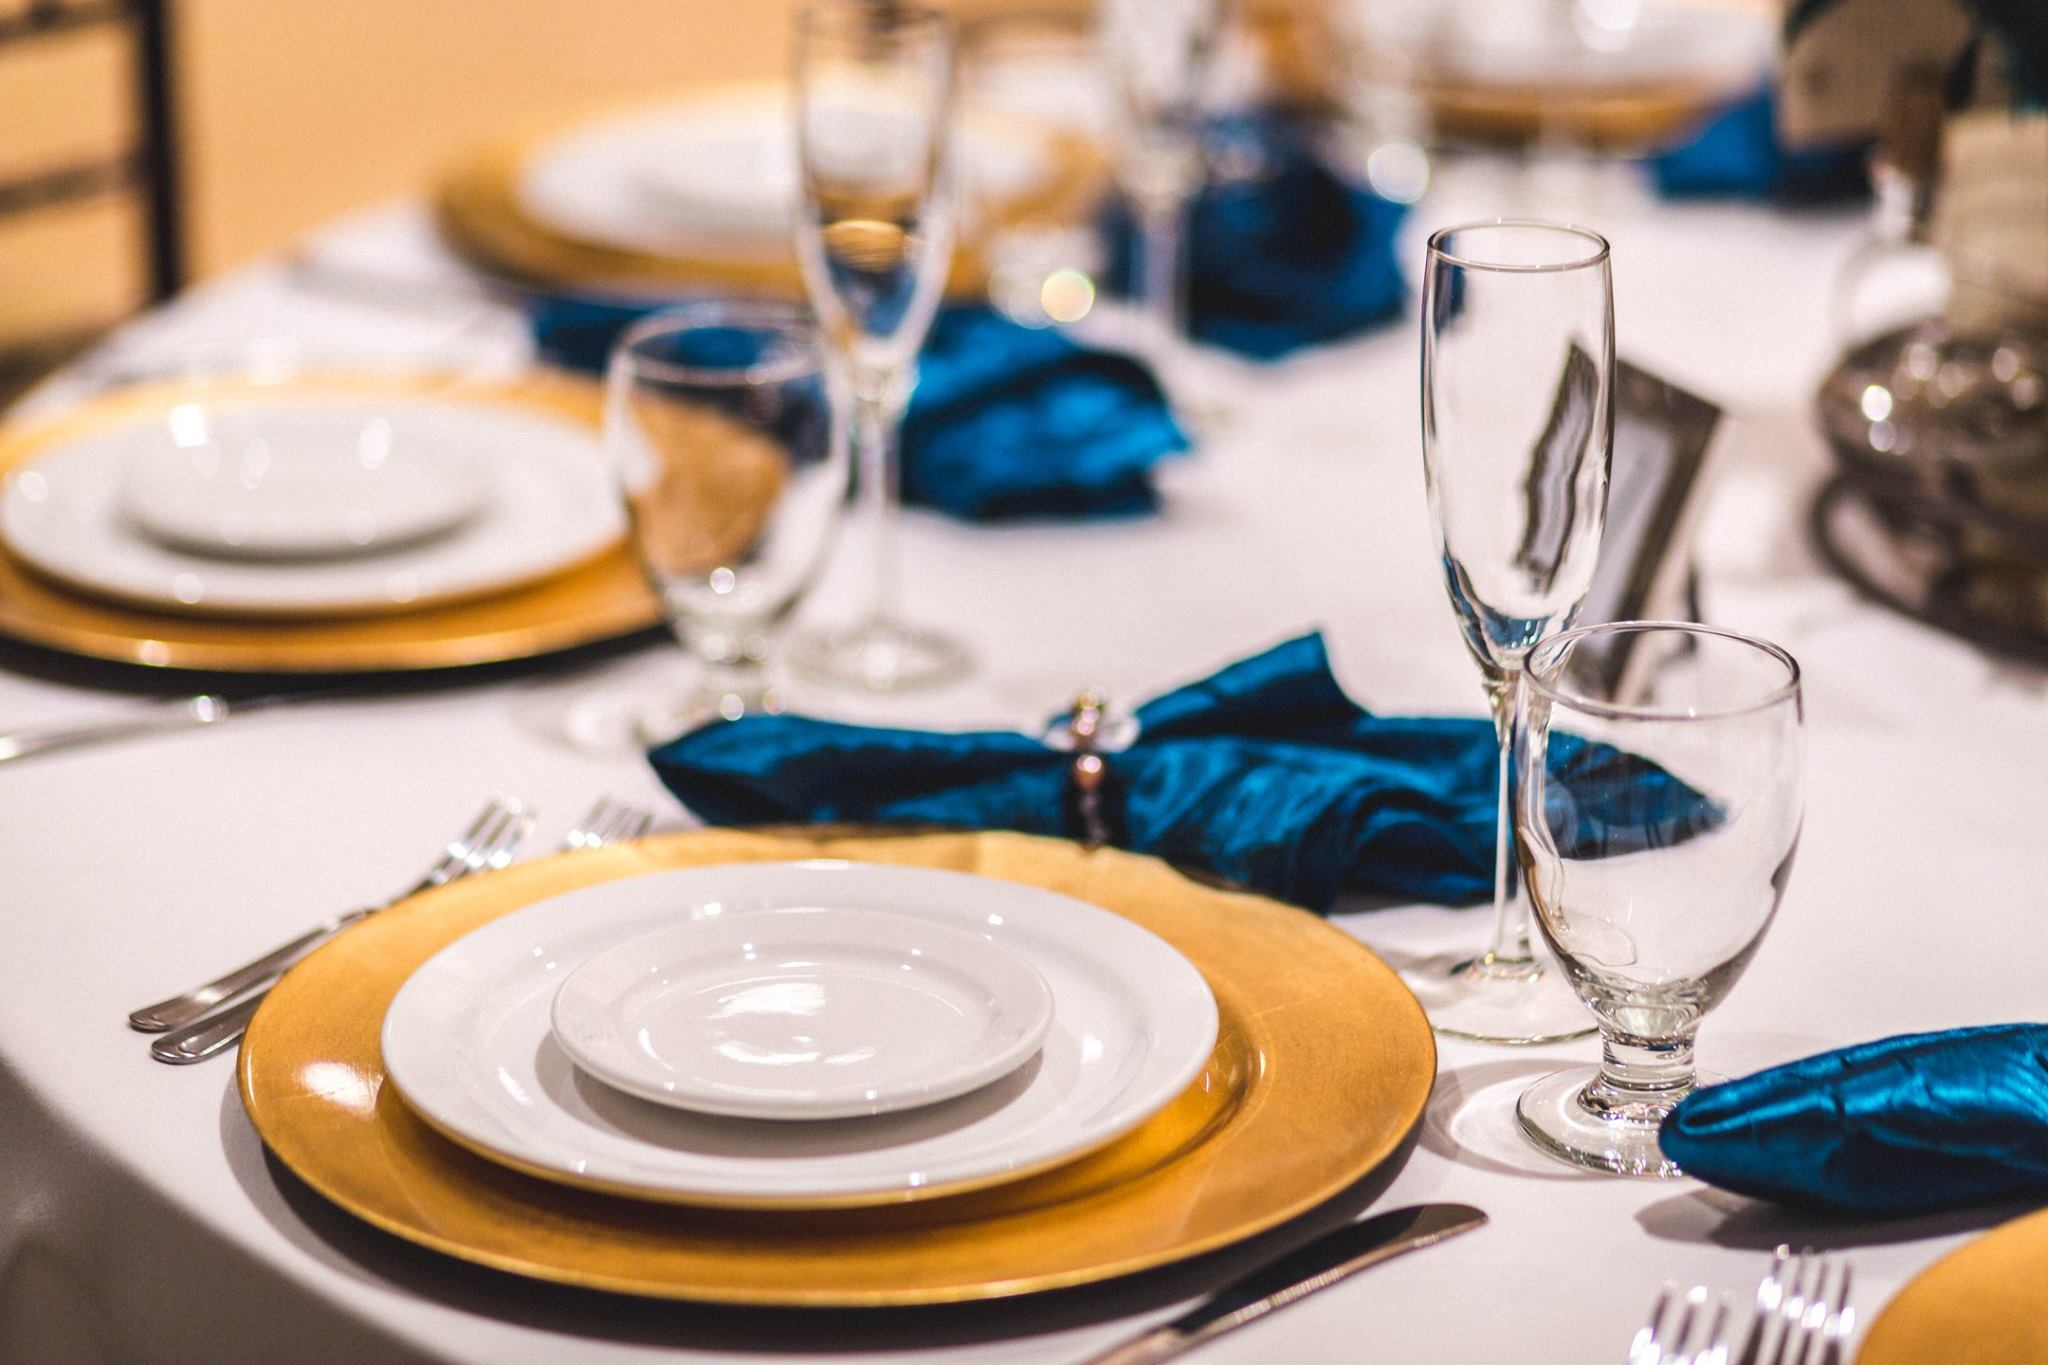 A wedding reception place setting, featuring ivory colored china and blue napkins